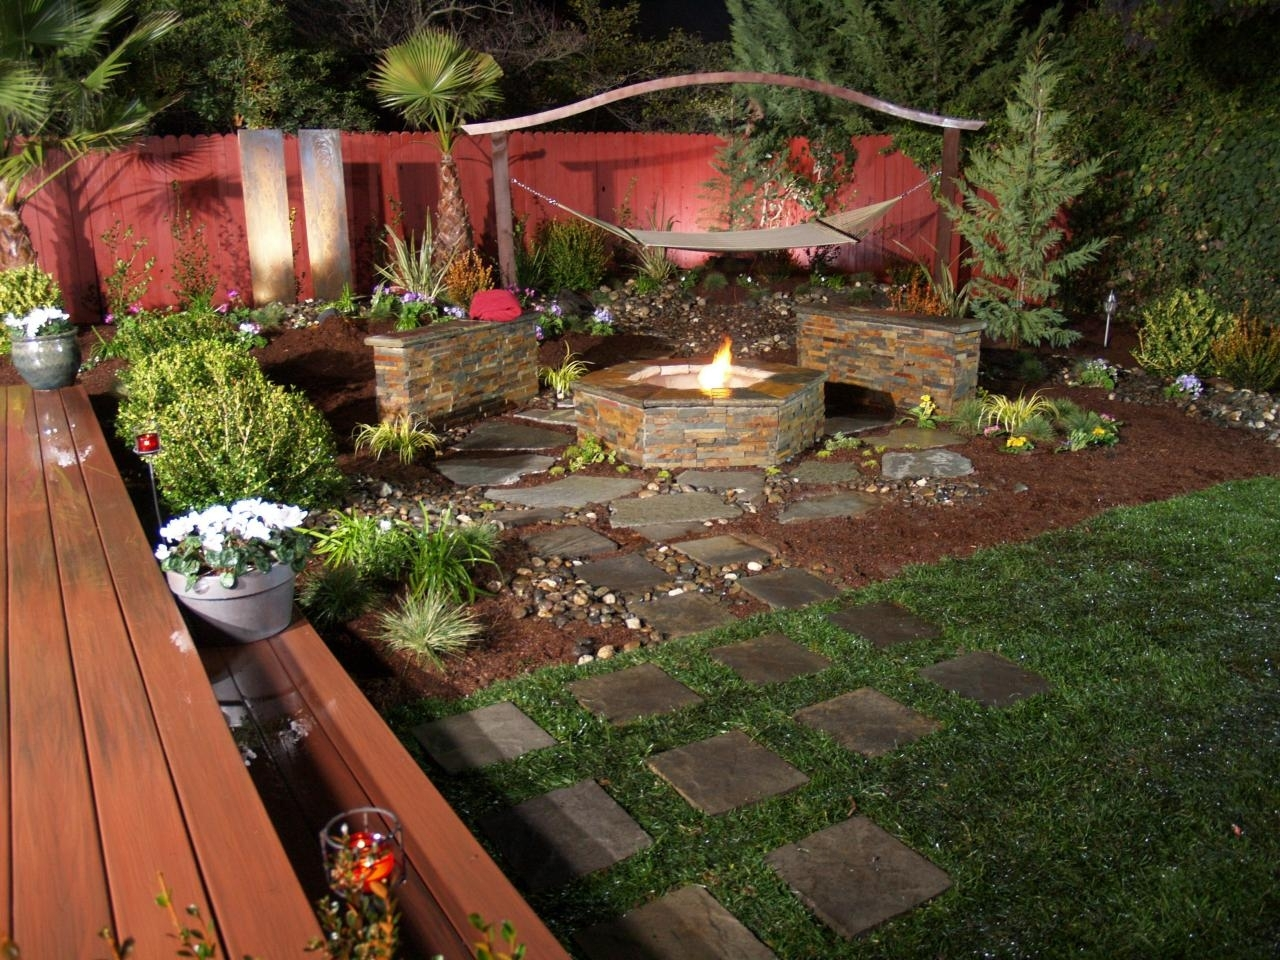 10 Perfect Patio Design Ideas With Fire Pits %name 2021